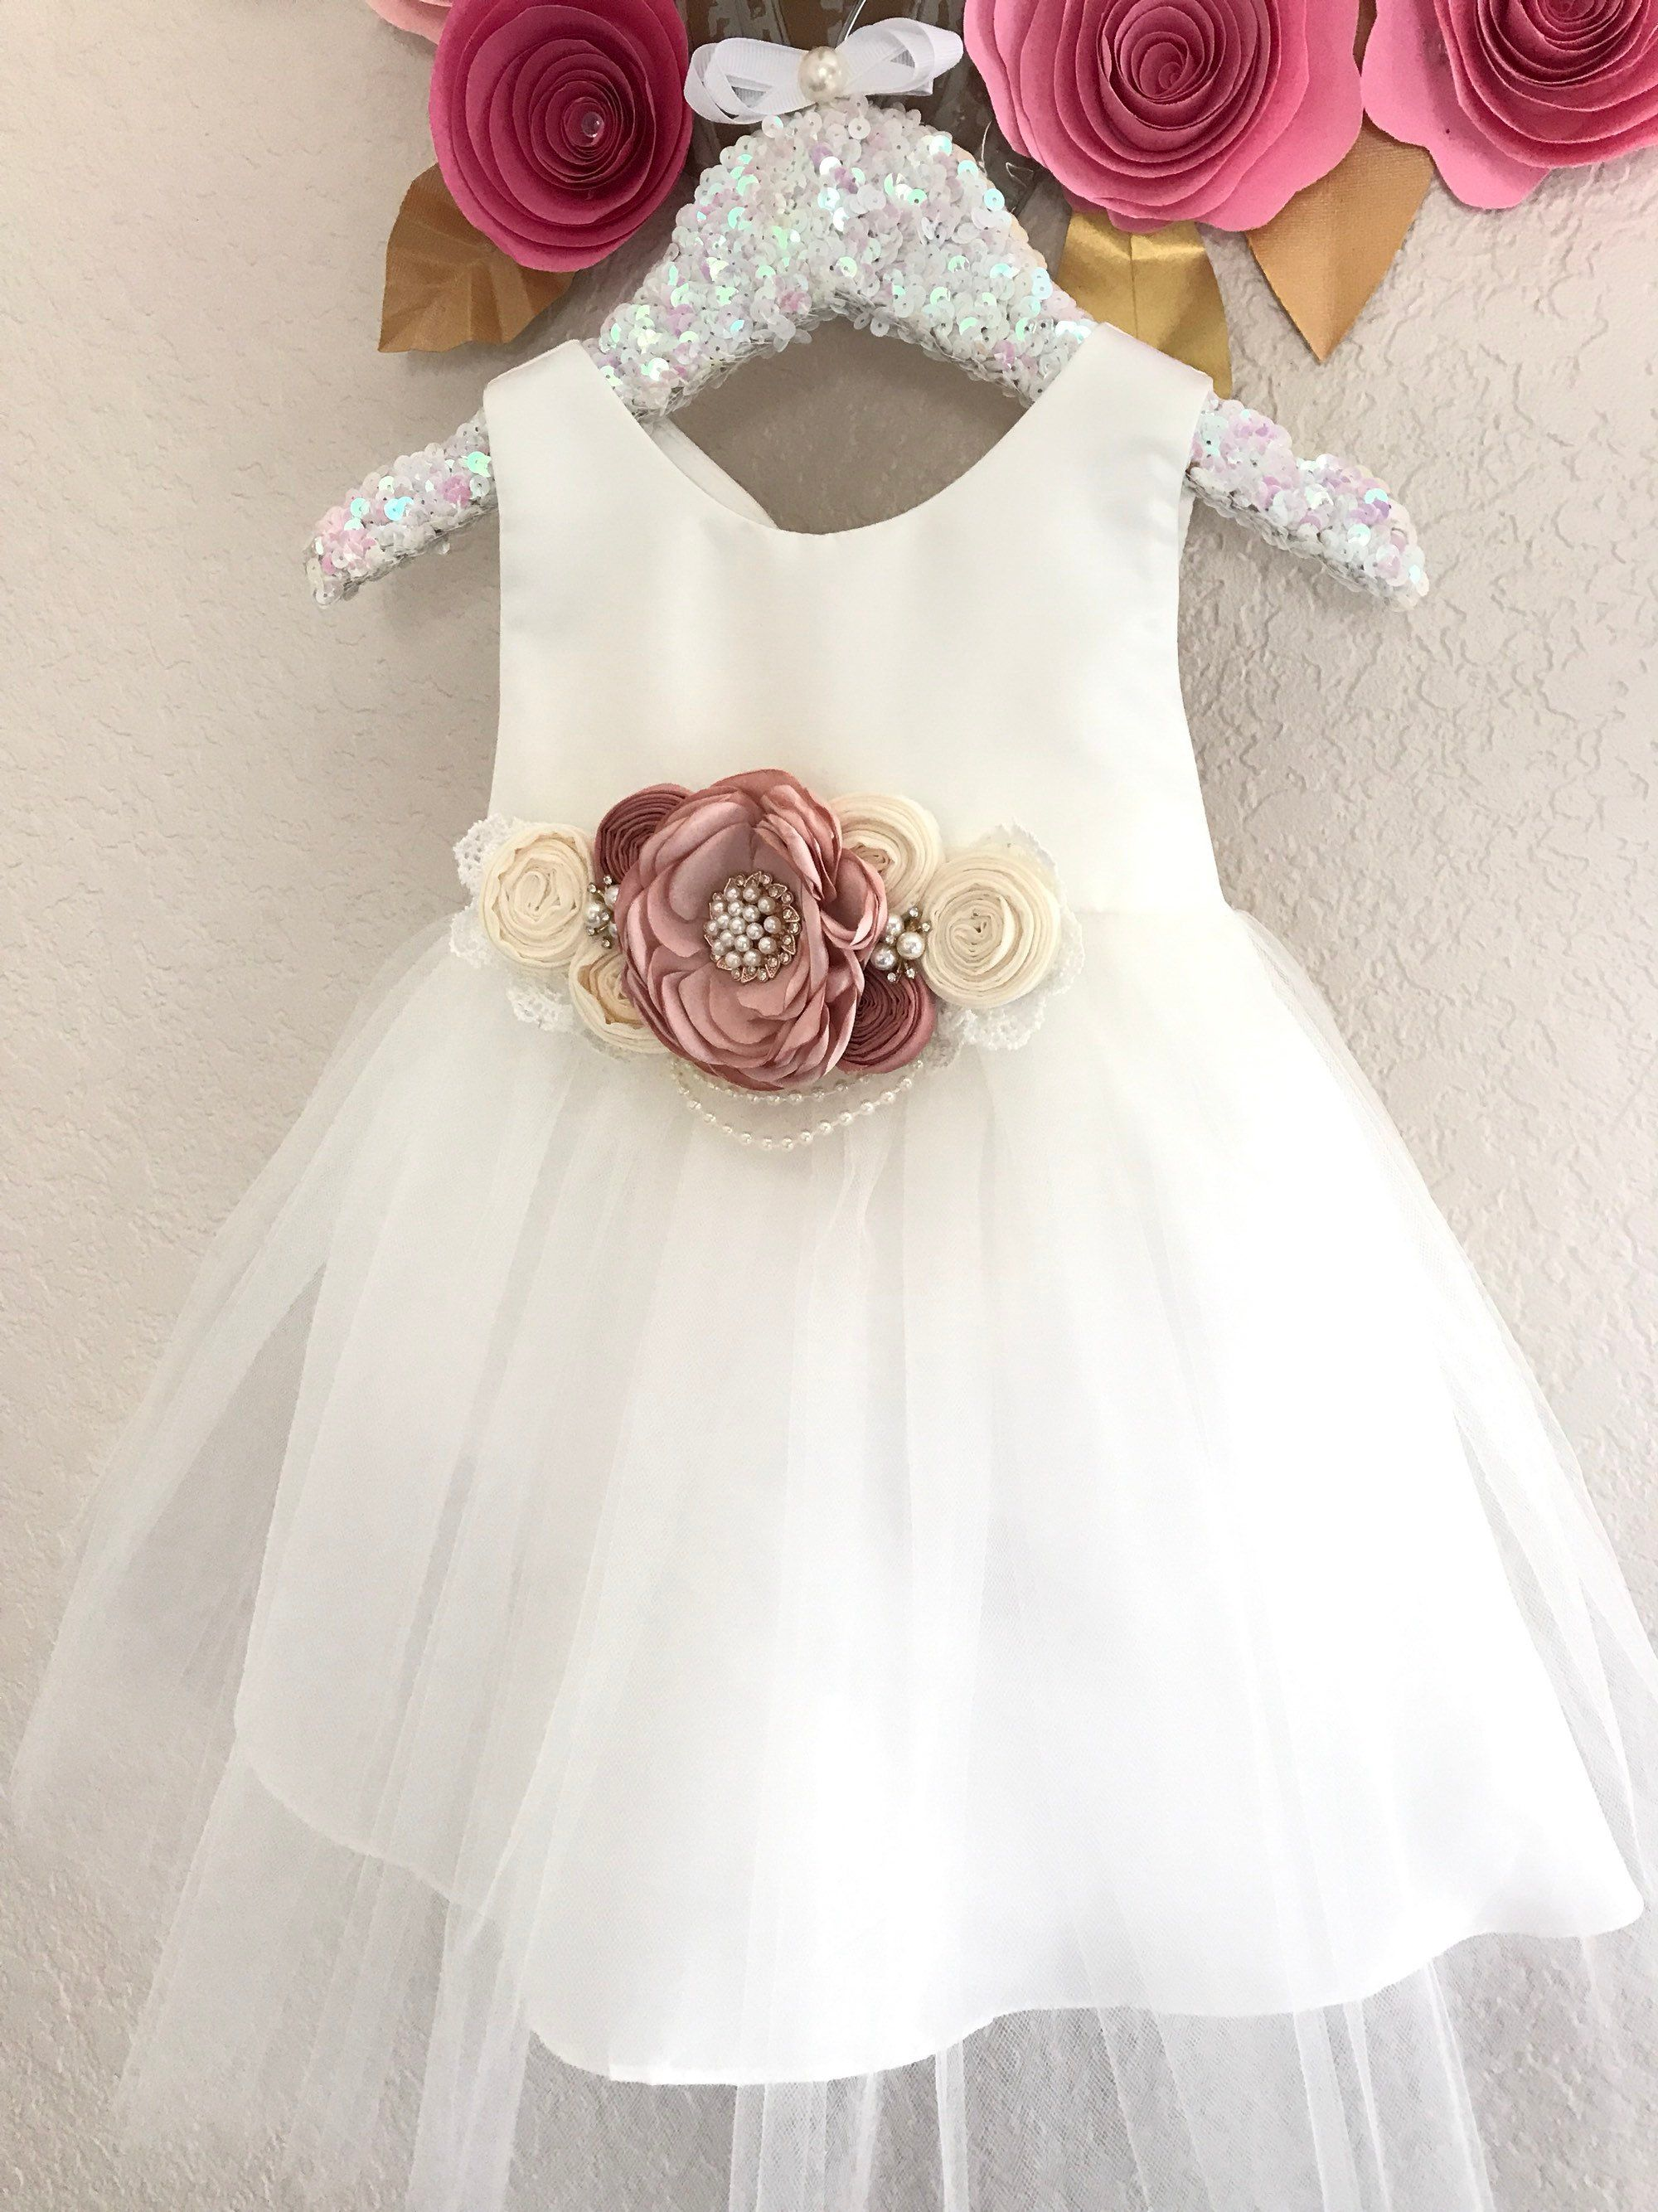 Pin on Baby / Infant Dresses